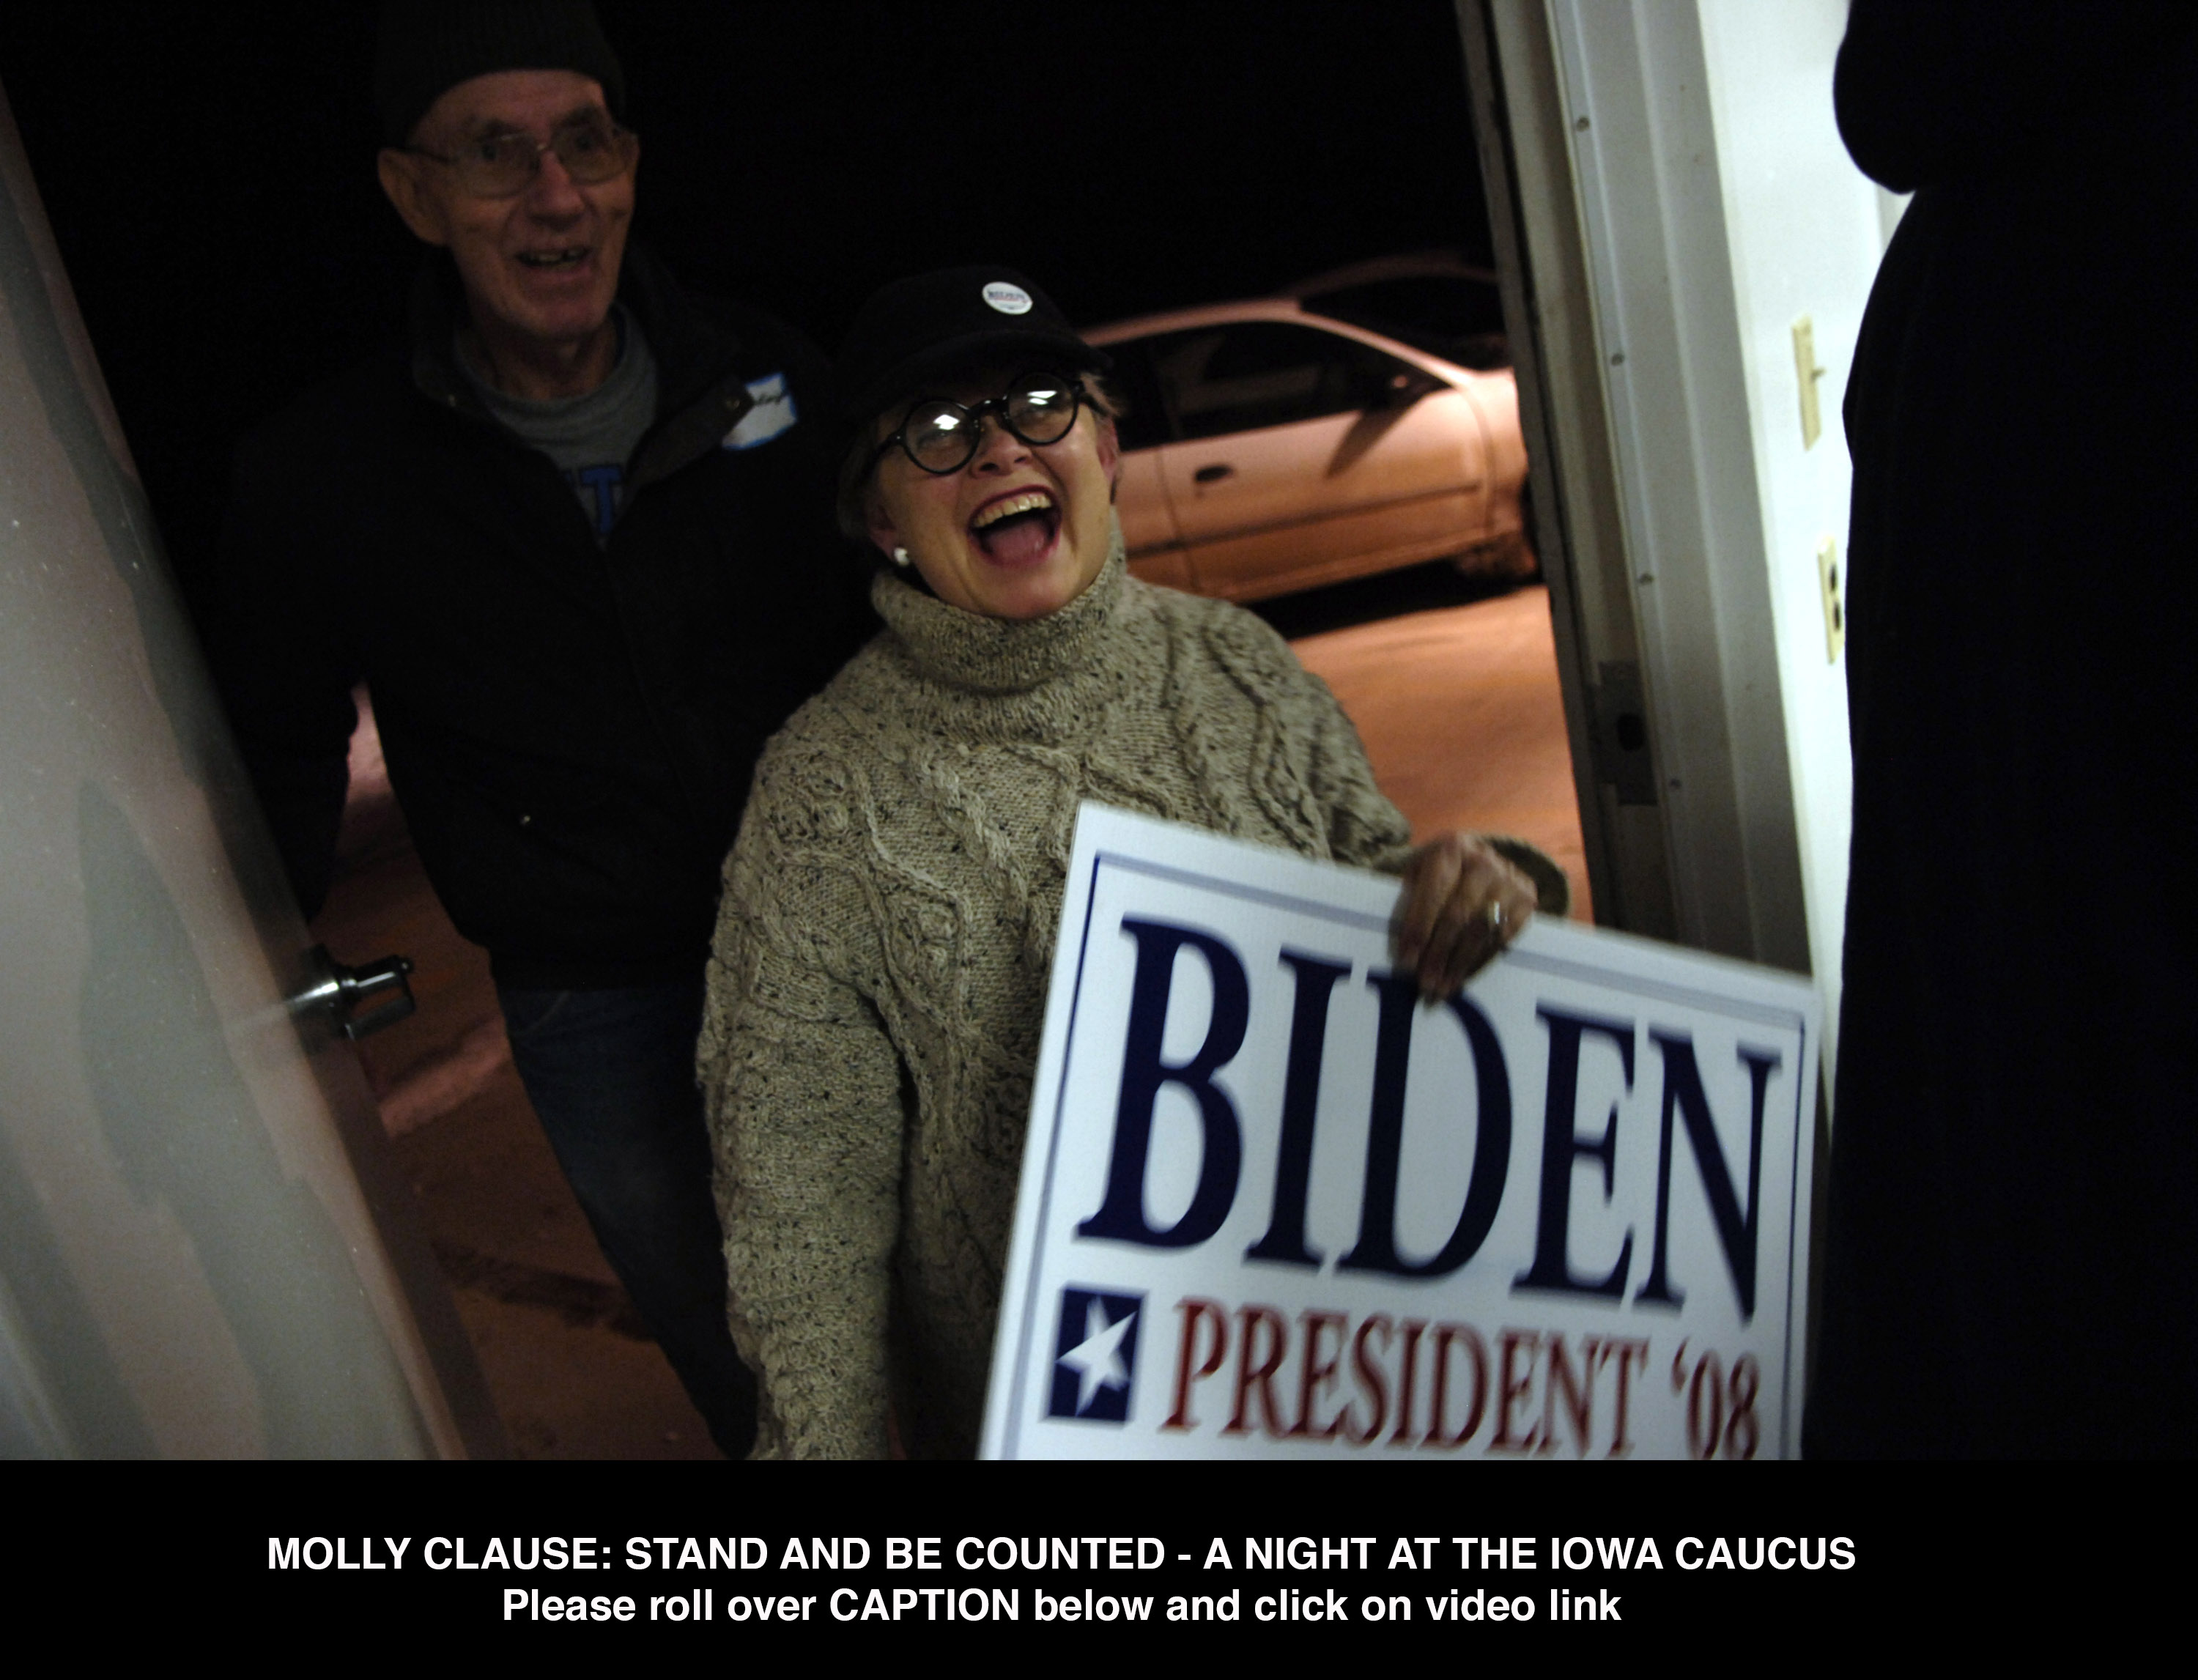 CLICK HERE FOR VIDEOMolly Clause arrives at her caucus site loaded with materials to support Democratic presidential hopeful Sen. Joe Biden.